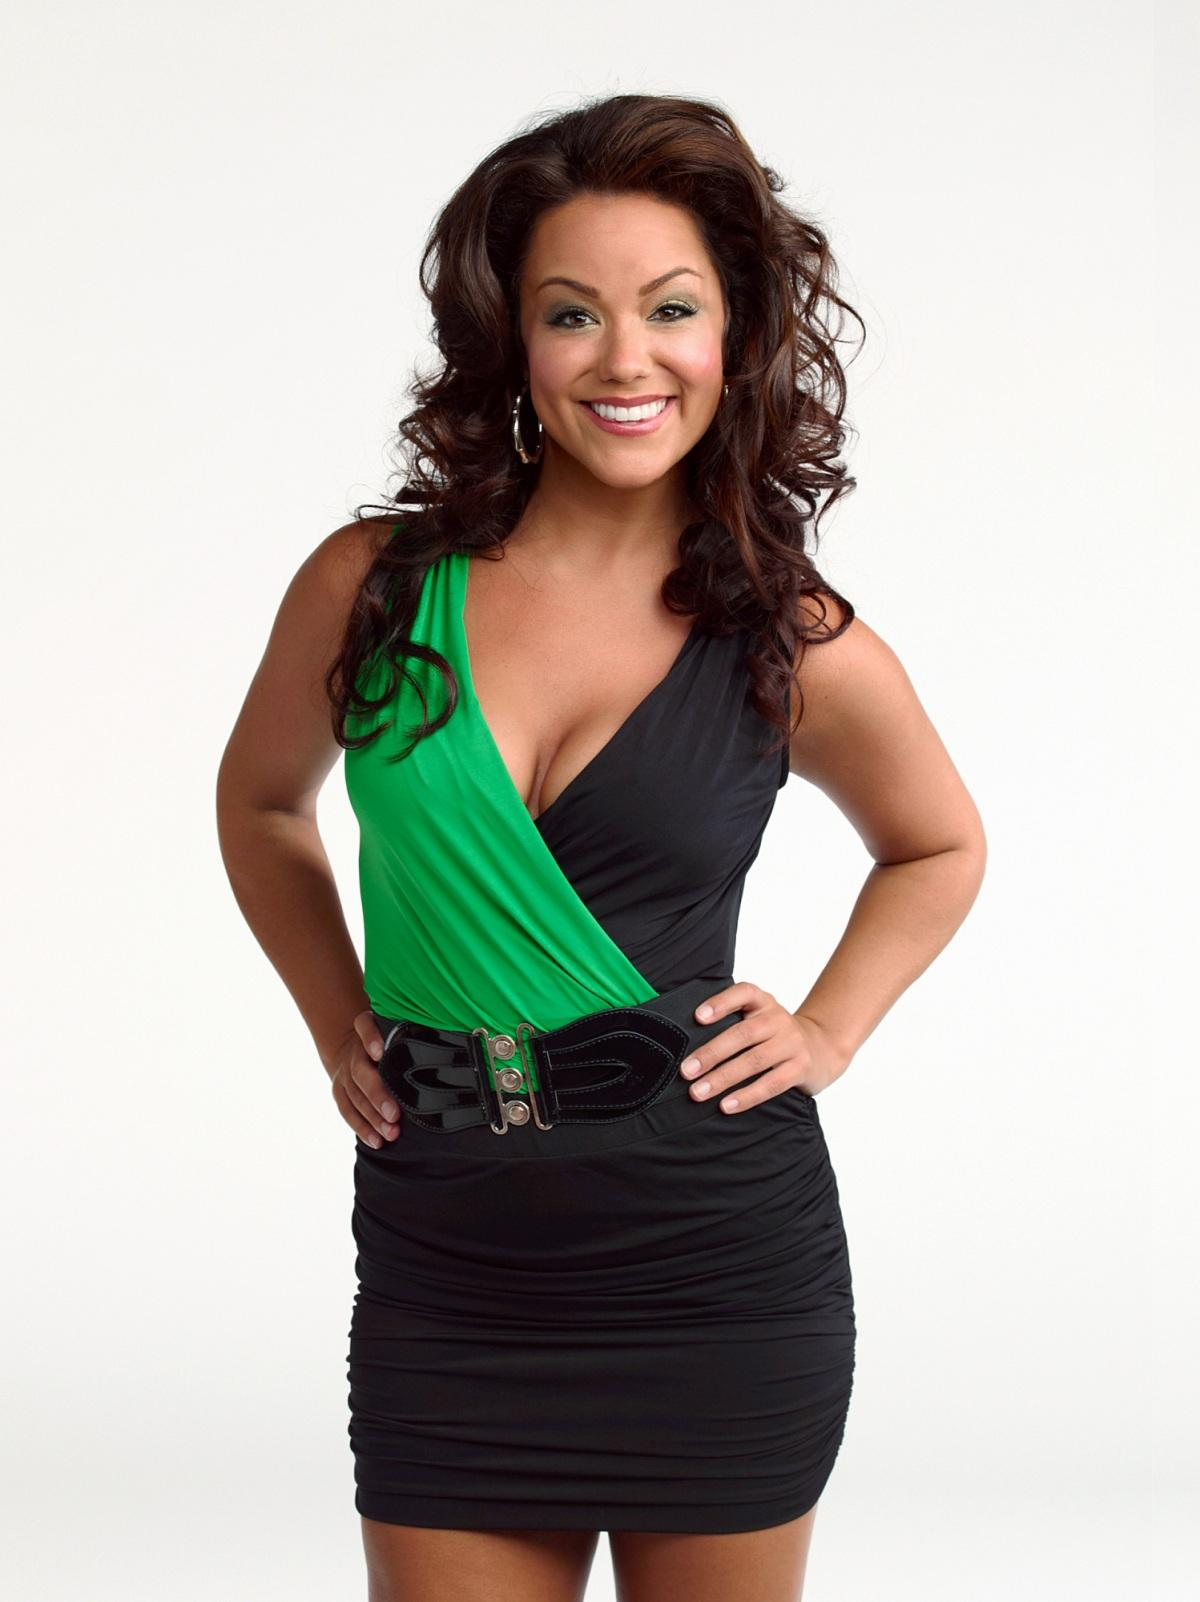 Commit katy mixon boobs apologise, but